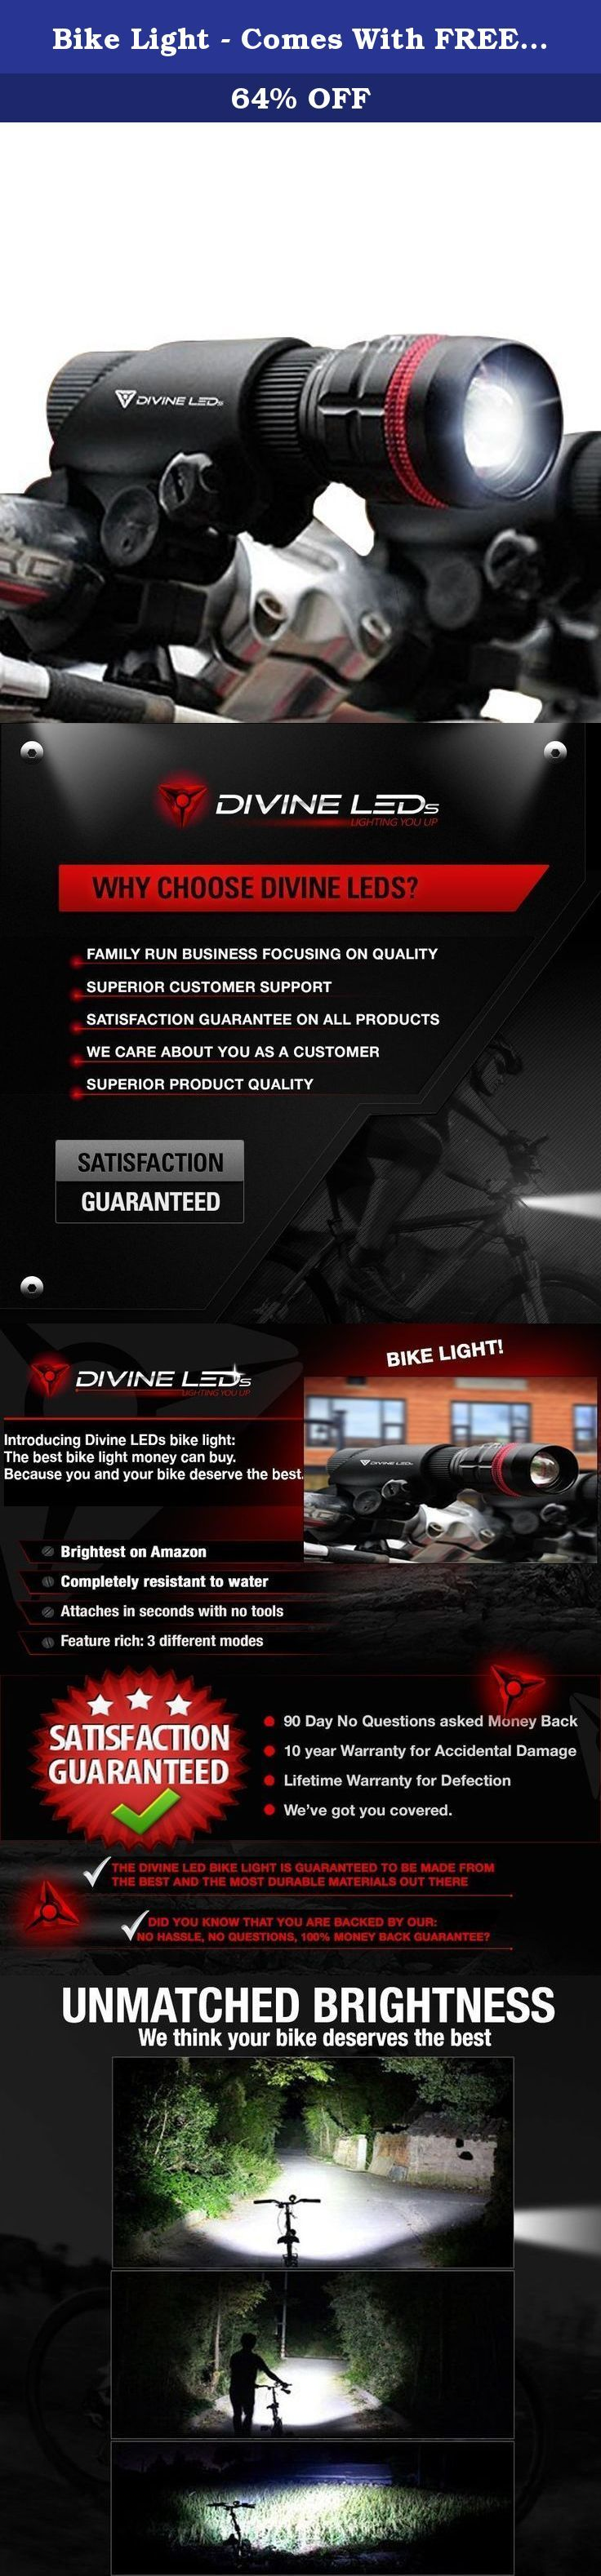 Bike Light - Comes With FREE TAIL LIGHT(Limited Time) - Tools-Free Installation in Seconds - The Best Headlight on Amazon Compatible with: Mountain & Kids & Street Bicycles - Divine LEDs. BRIGHTEST BIKE LIGHT ON AMAZON - You spent a lot of money on your bike, shouldn't your accessories be up to the same standard? Constructed with the Divine LED Technology, our bike flashlight is unlike any other. Durable, effective and reliable on the road. The only companion you and your bike will ever...